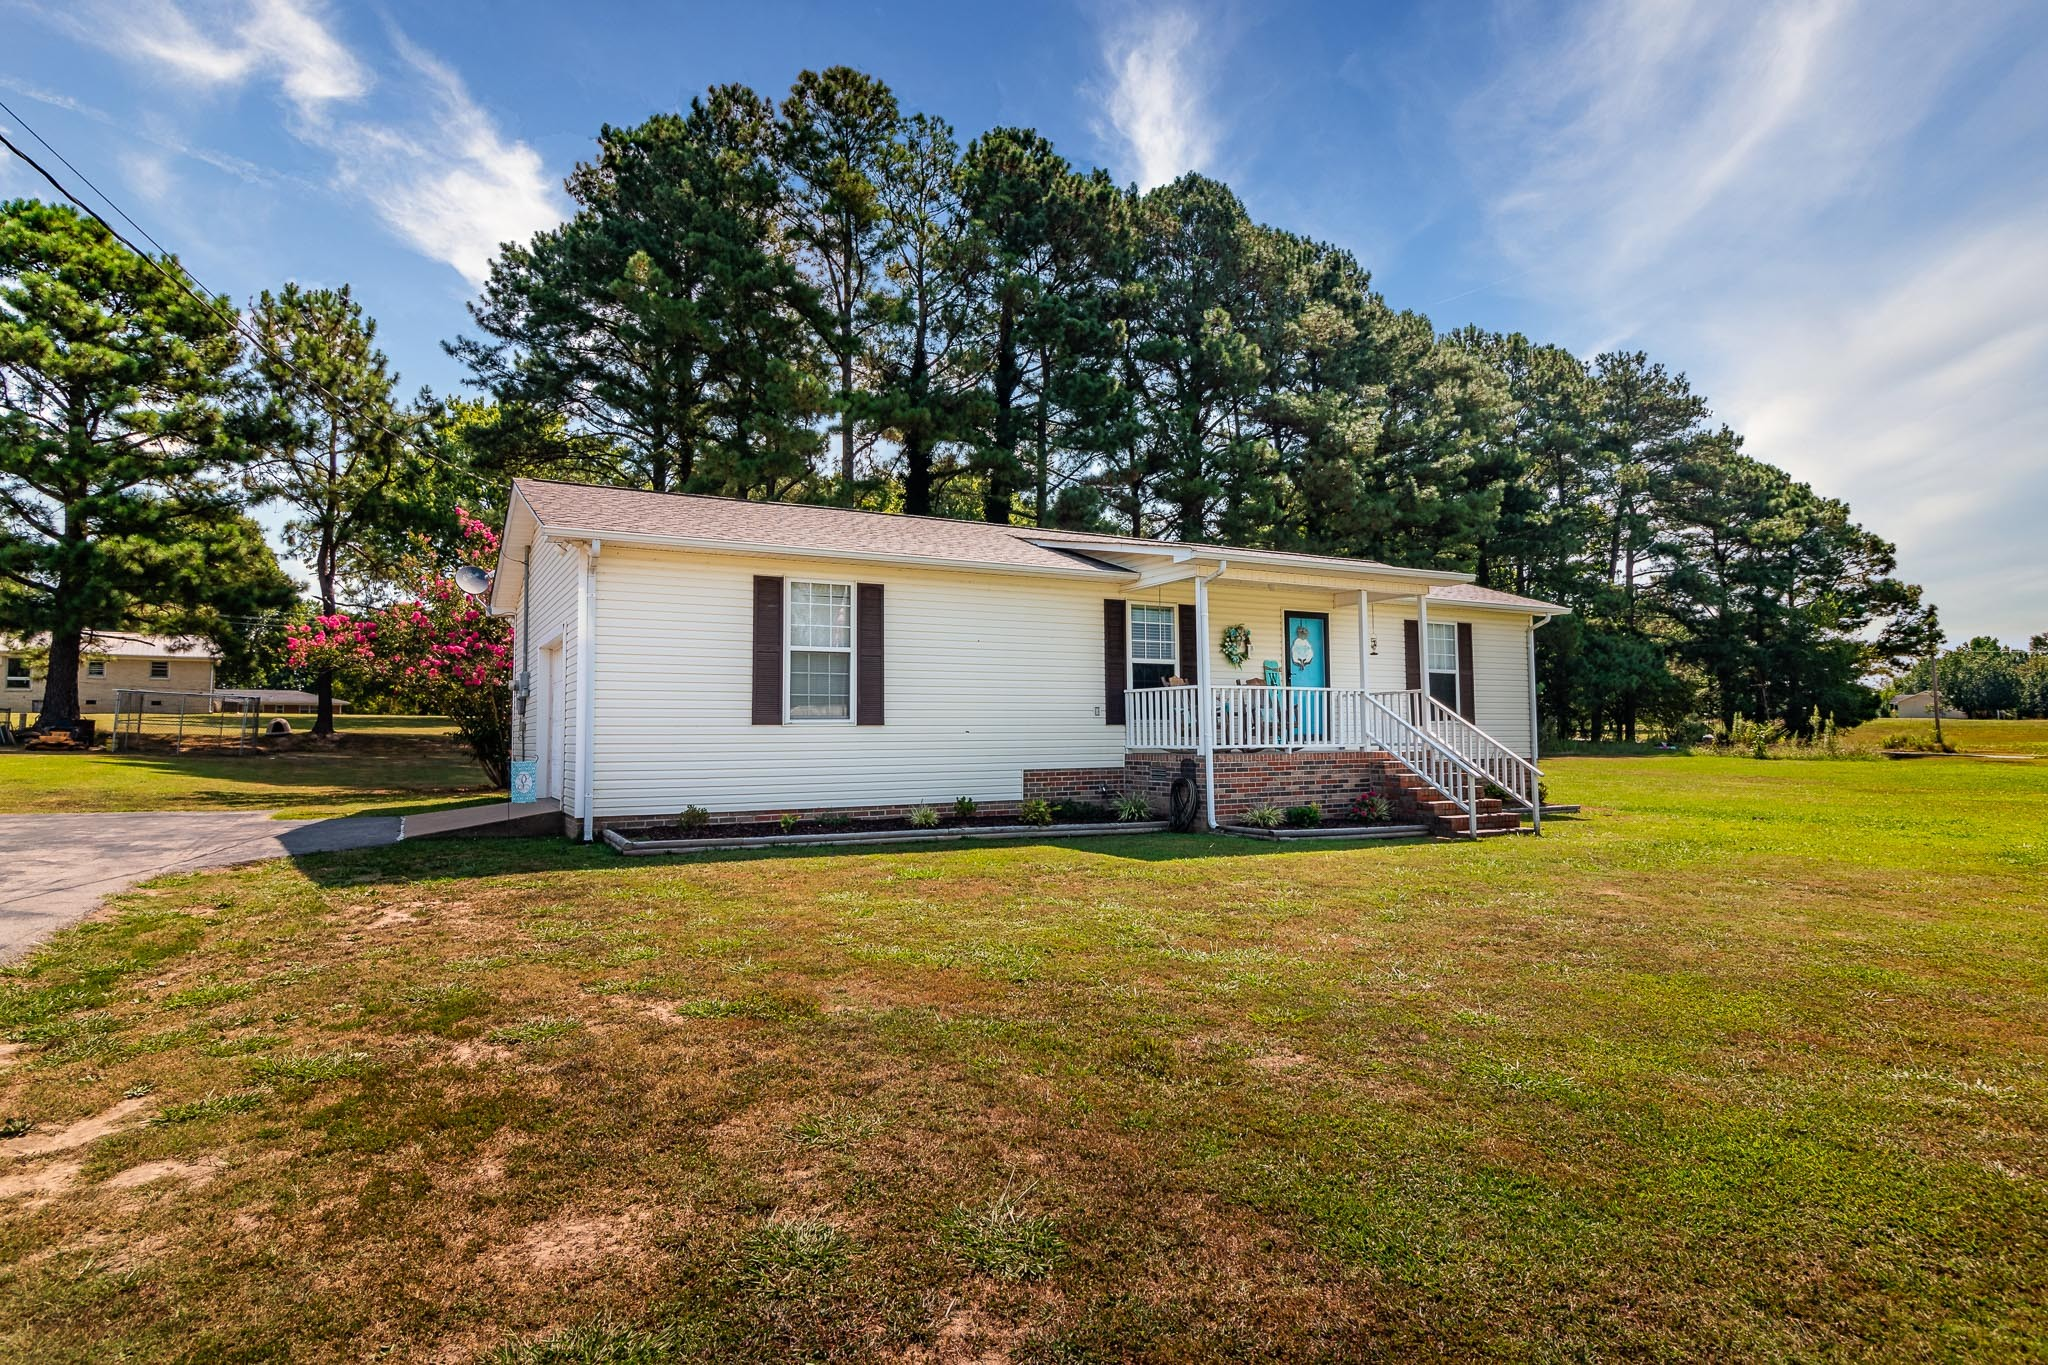 235 Thompson Dr, Minor Hill, Tennessee 38473, 2 Bedrooms Bedrooms, ,1 BathroomBathrooms,Single Family,For Sale,235 Thompson Dr,1,2250296